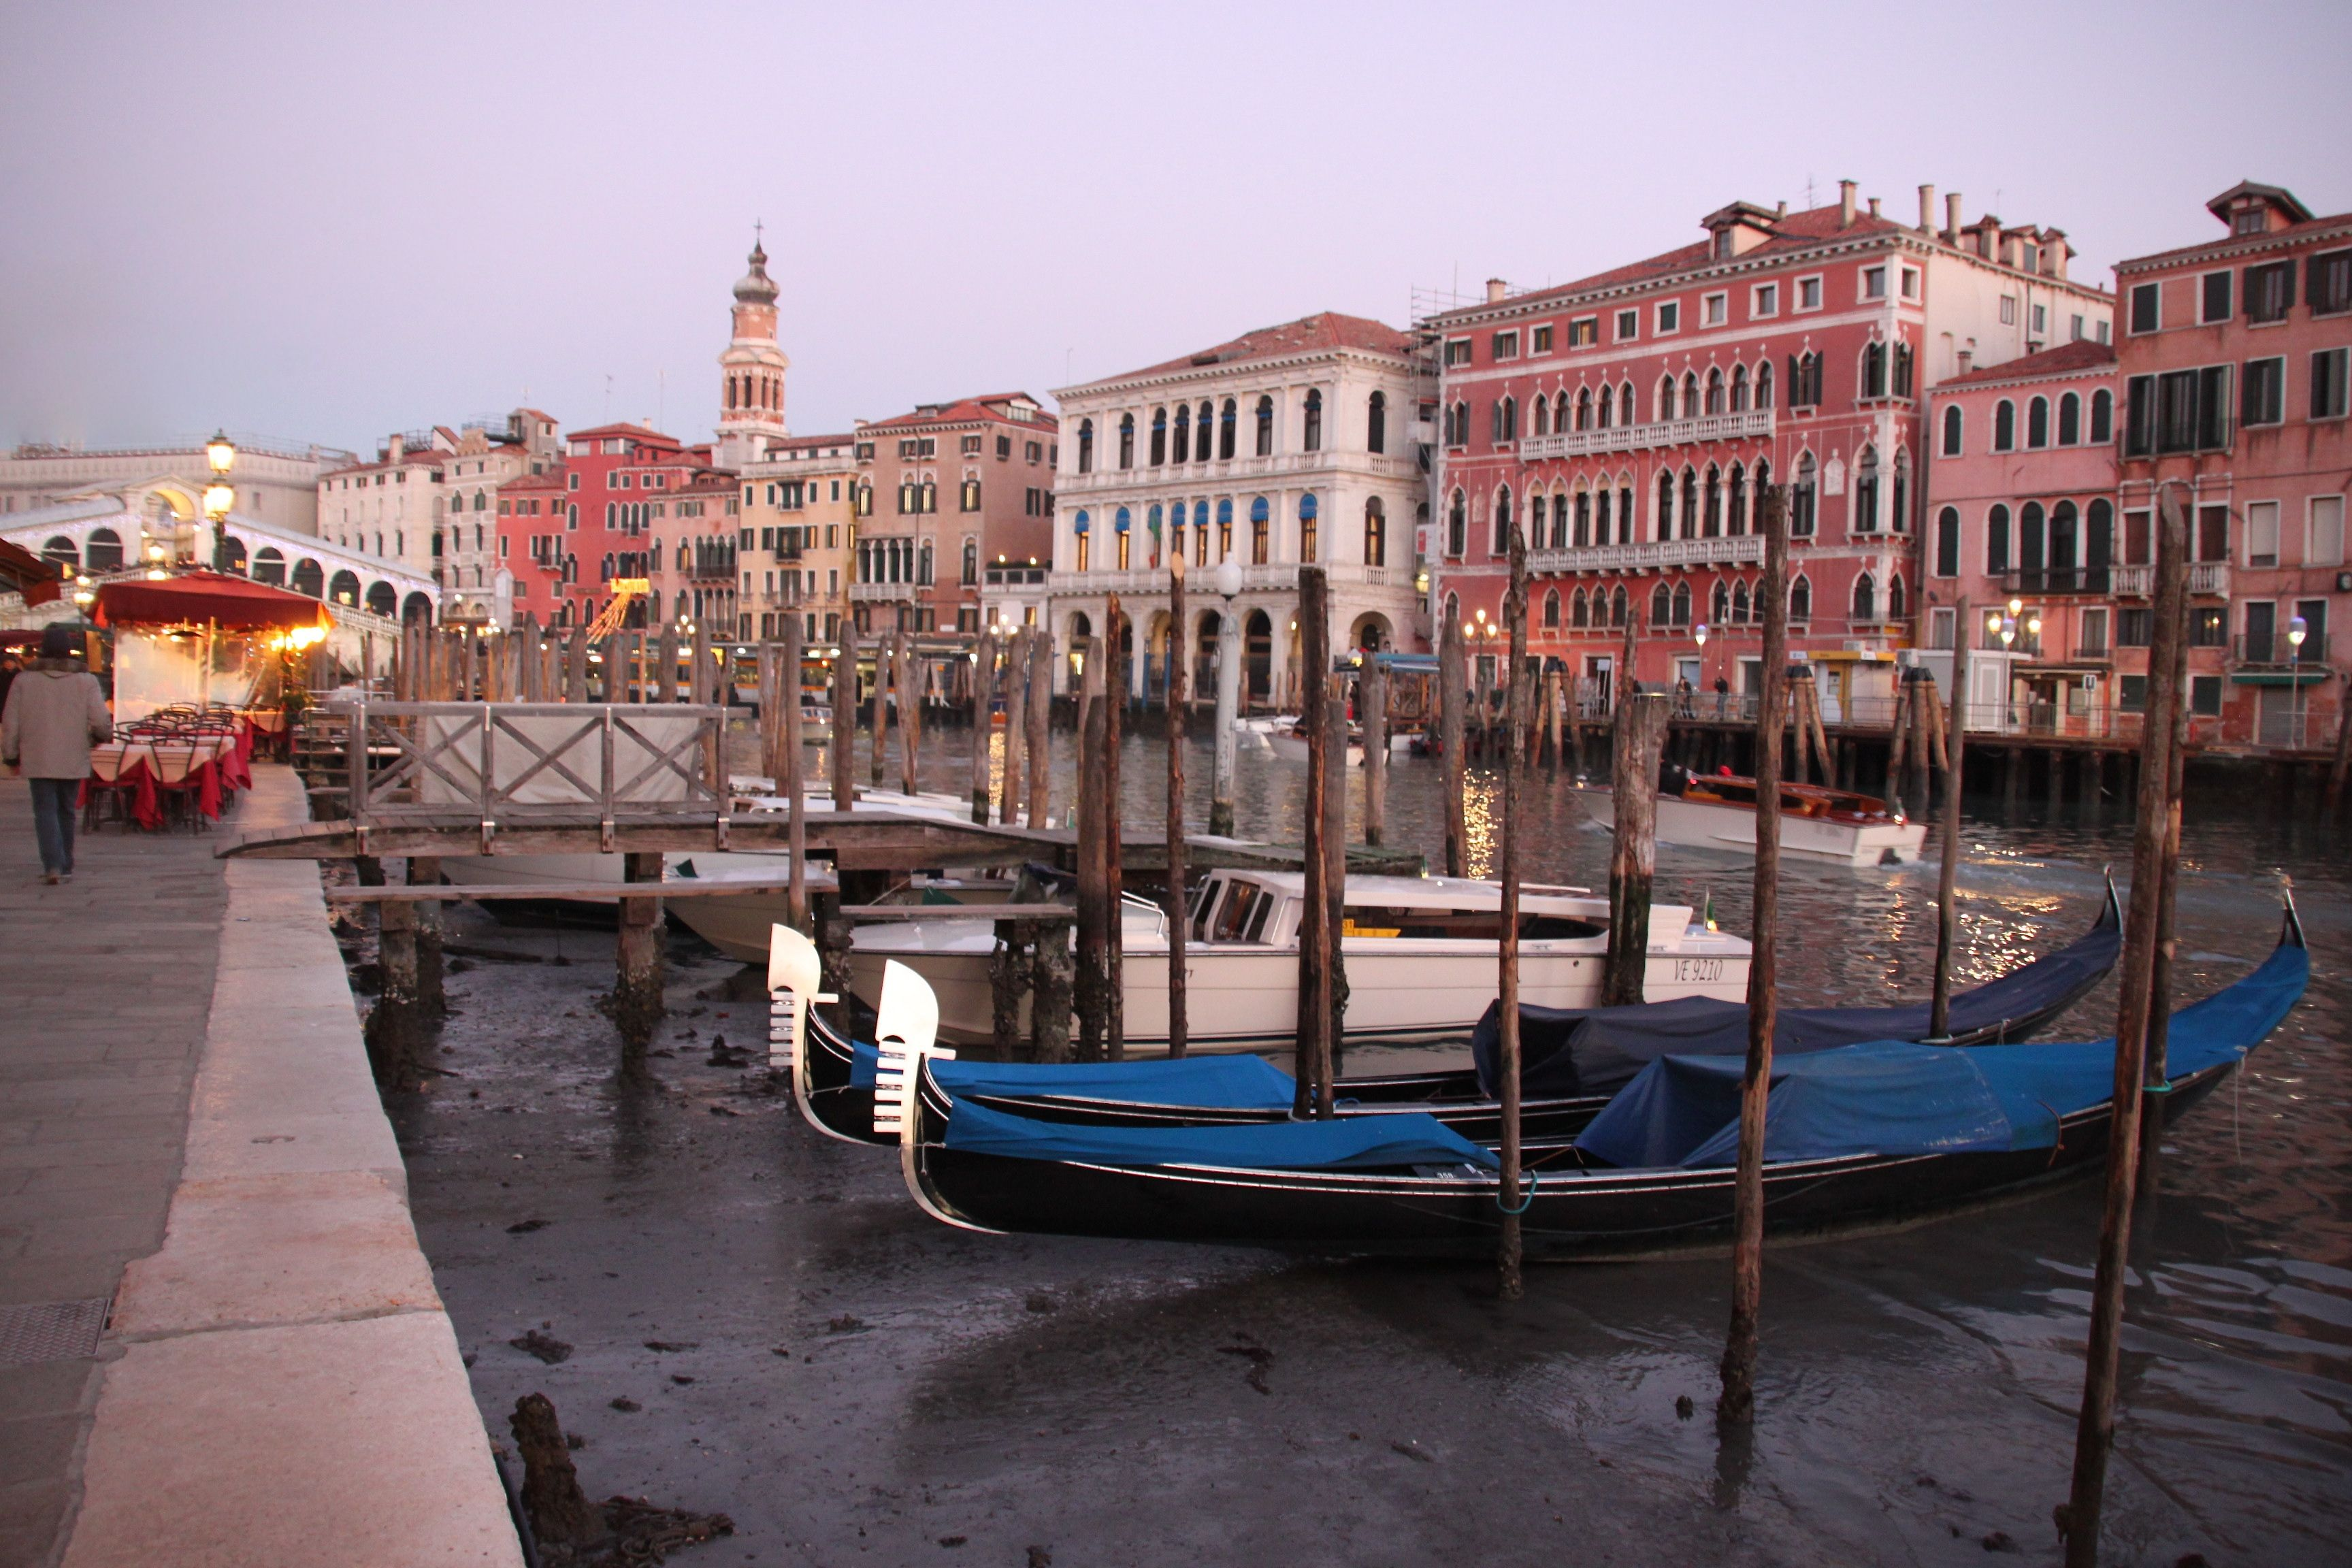 Gondole beached on the muddy Grand Canal